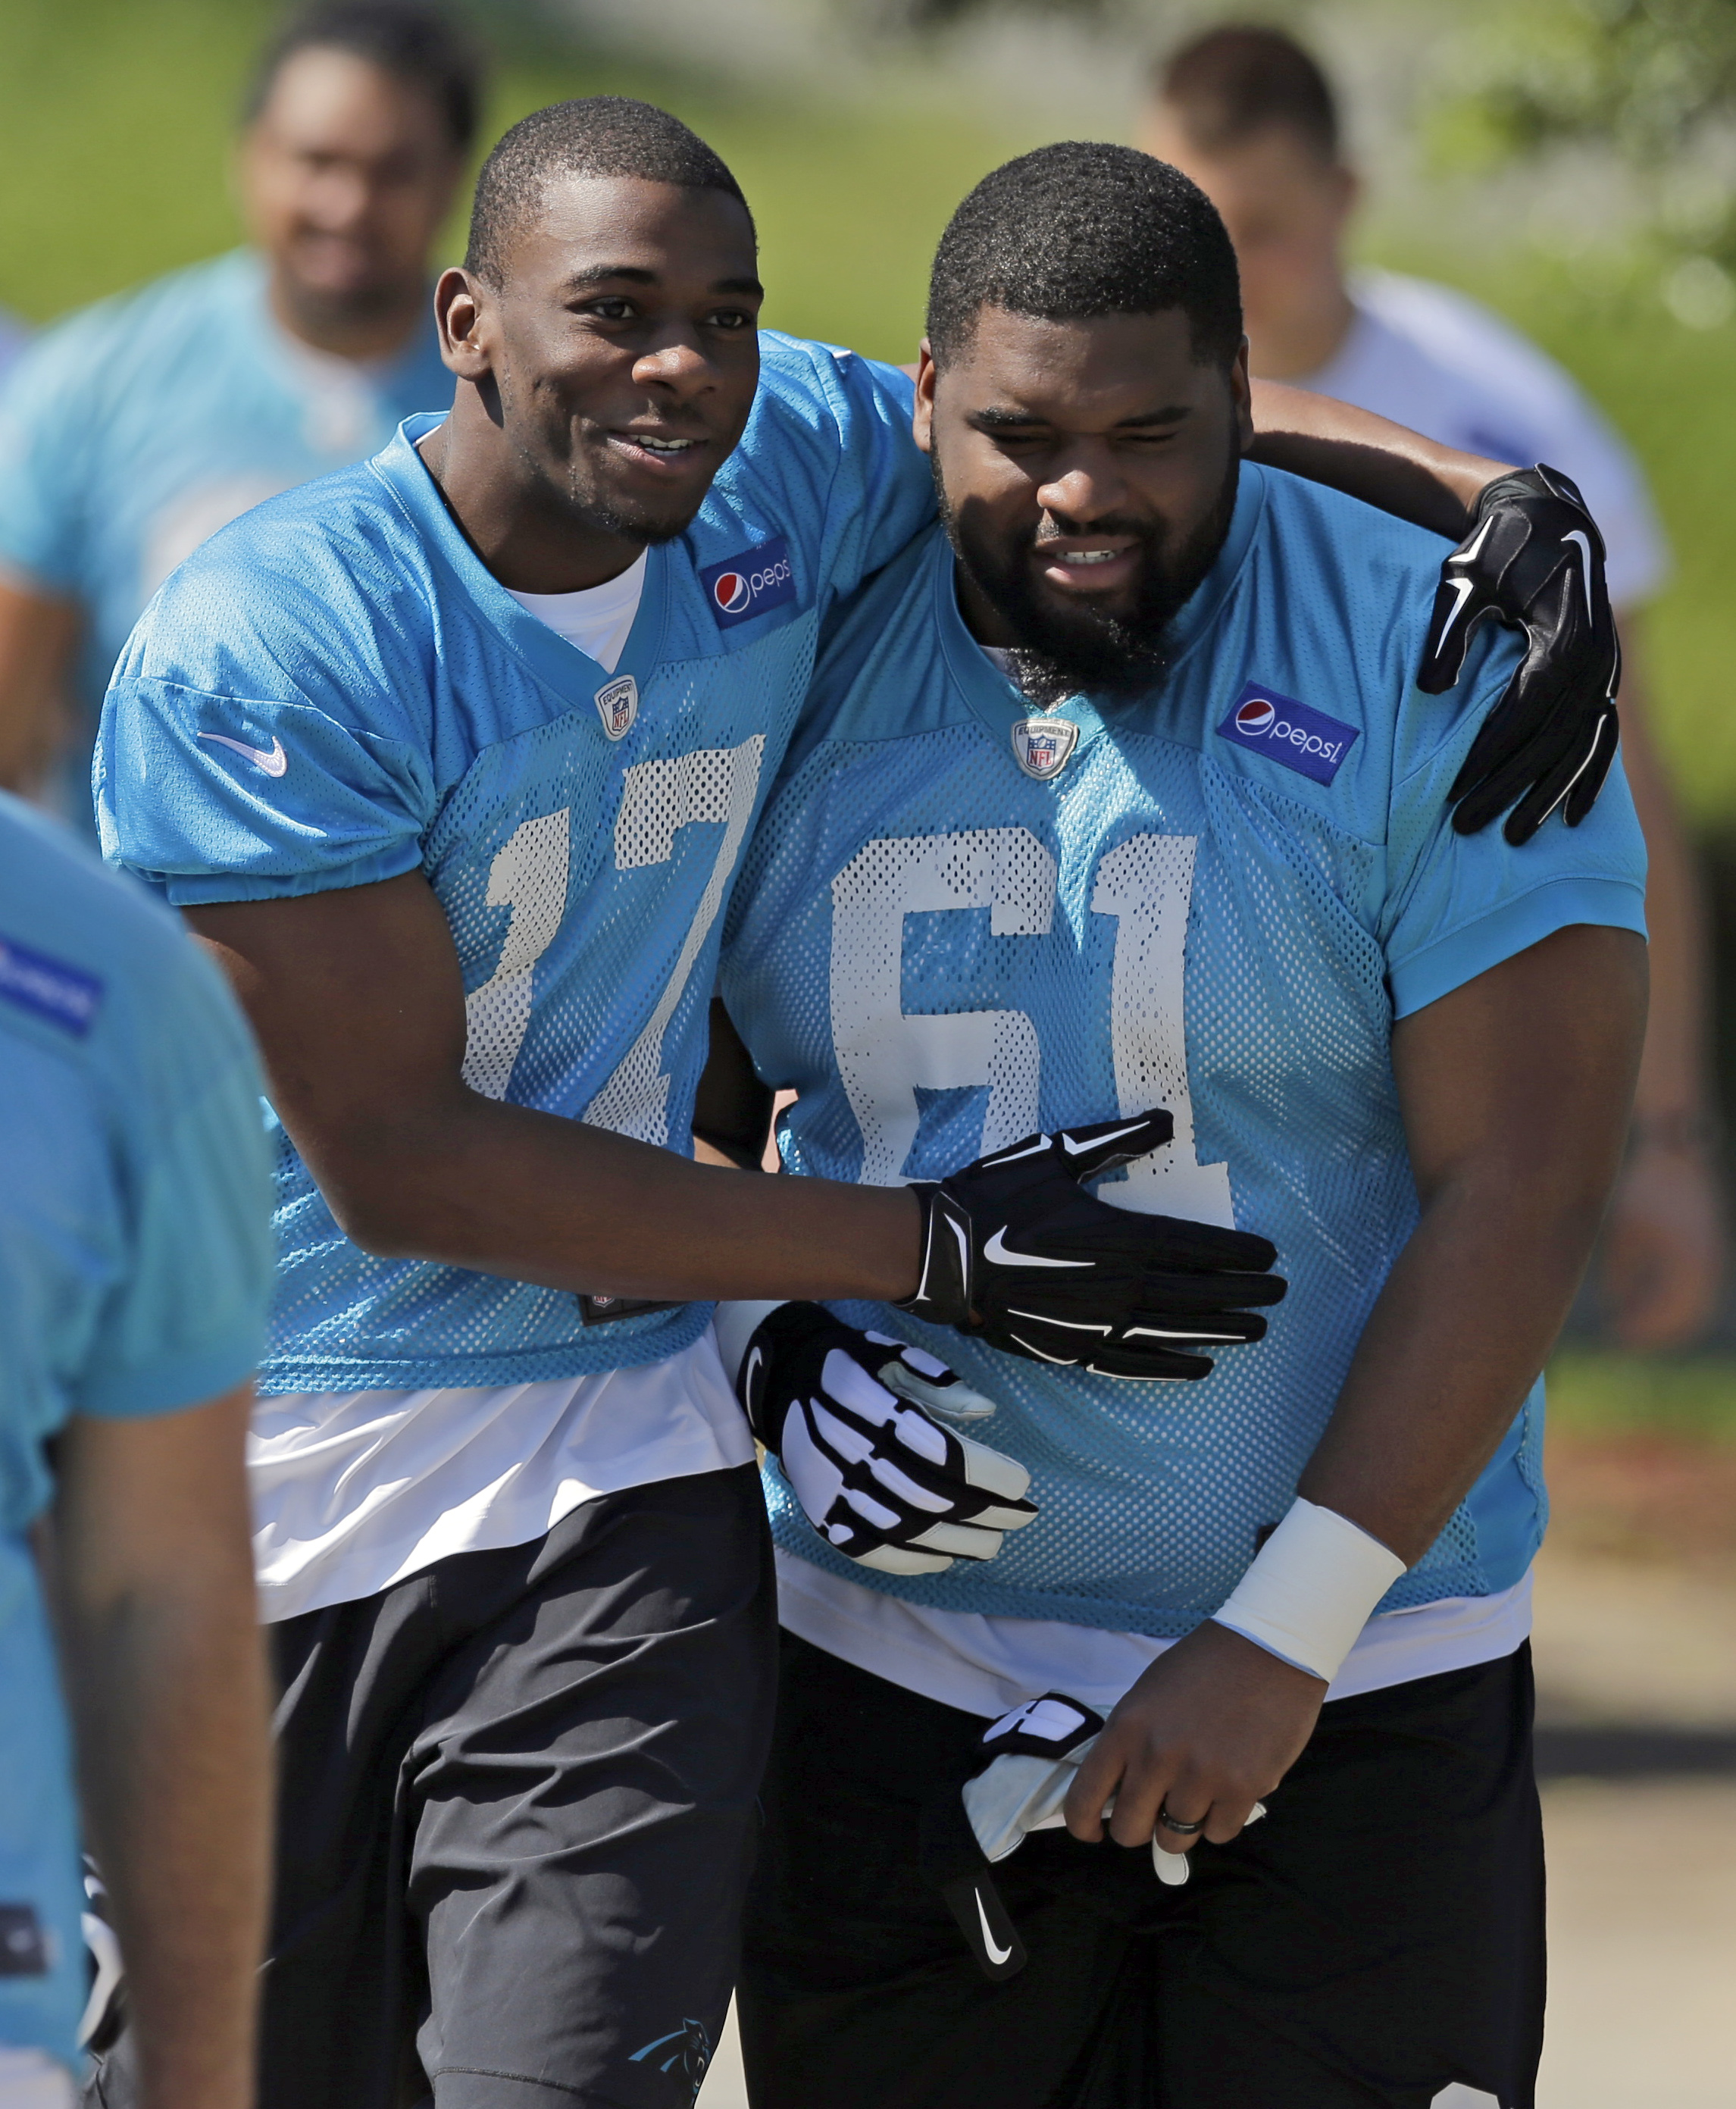 Carolina Panthers' Devin Funchess (17) jokes with Zach Allen (61) as they walk to a practice at the NFL football team's rookie minicamp in Charlotte, N.C., Friday, May 8, 2015. (AP Photo/Chuck Burton)